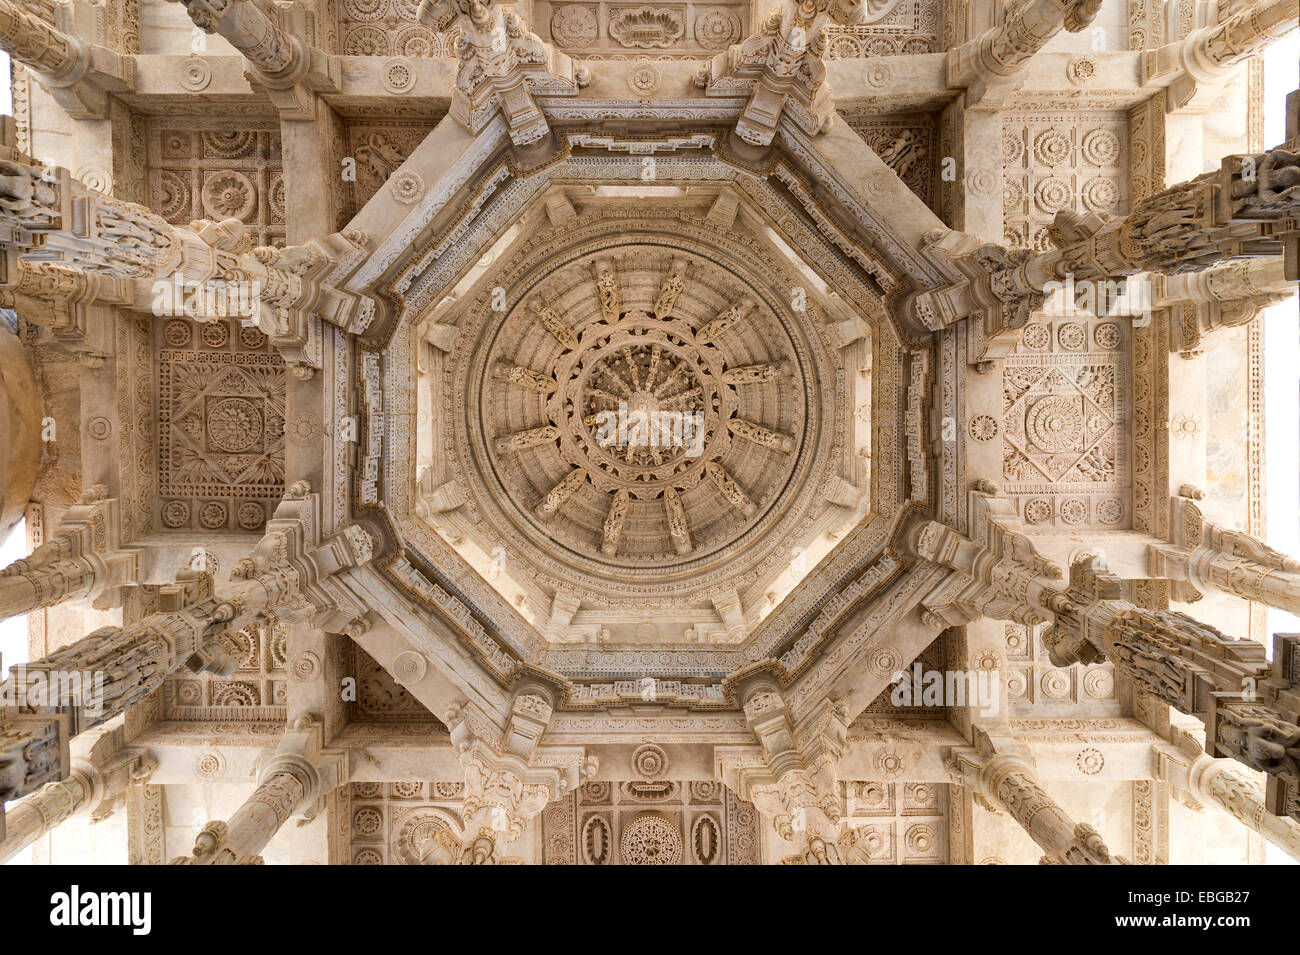 Interior hall with ornate pillars and ceilings, marble temple, Adinatha Temple, temple of the Jain religion, Ranakpur, Stock Photo